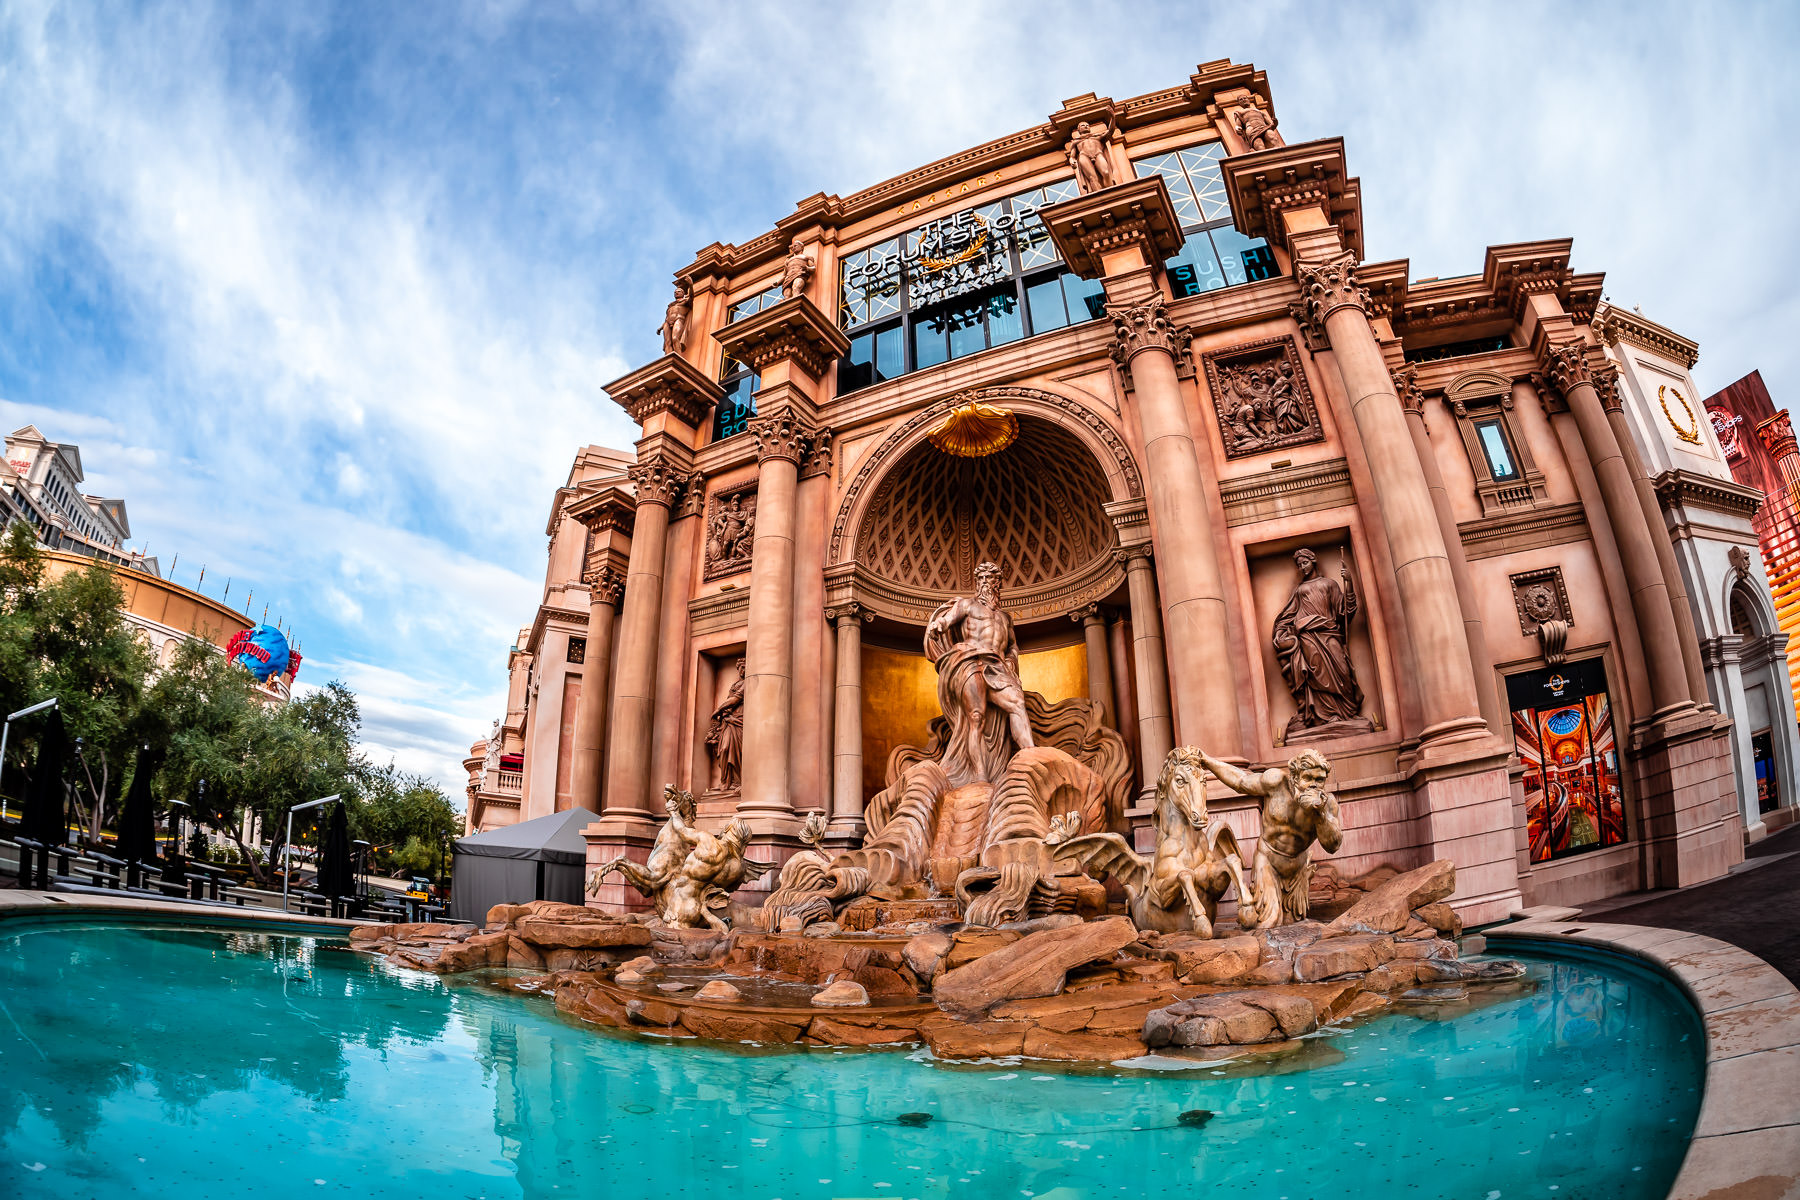 The replica Trevi Fountain at the Forum Shops at Caesars Palace, Las Vegas.